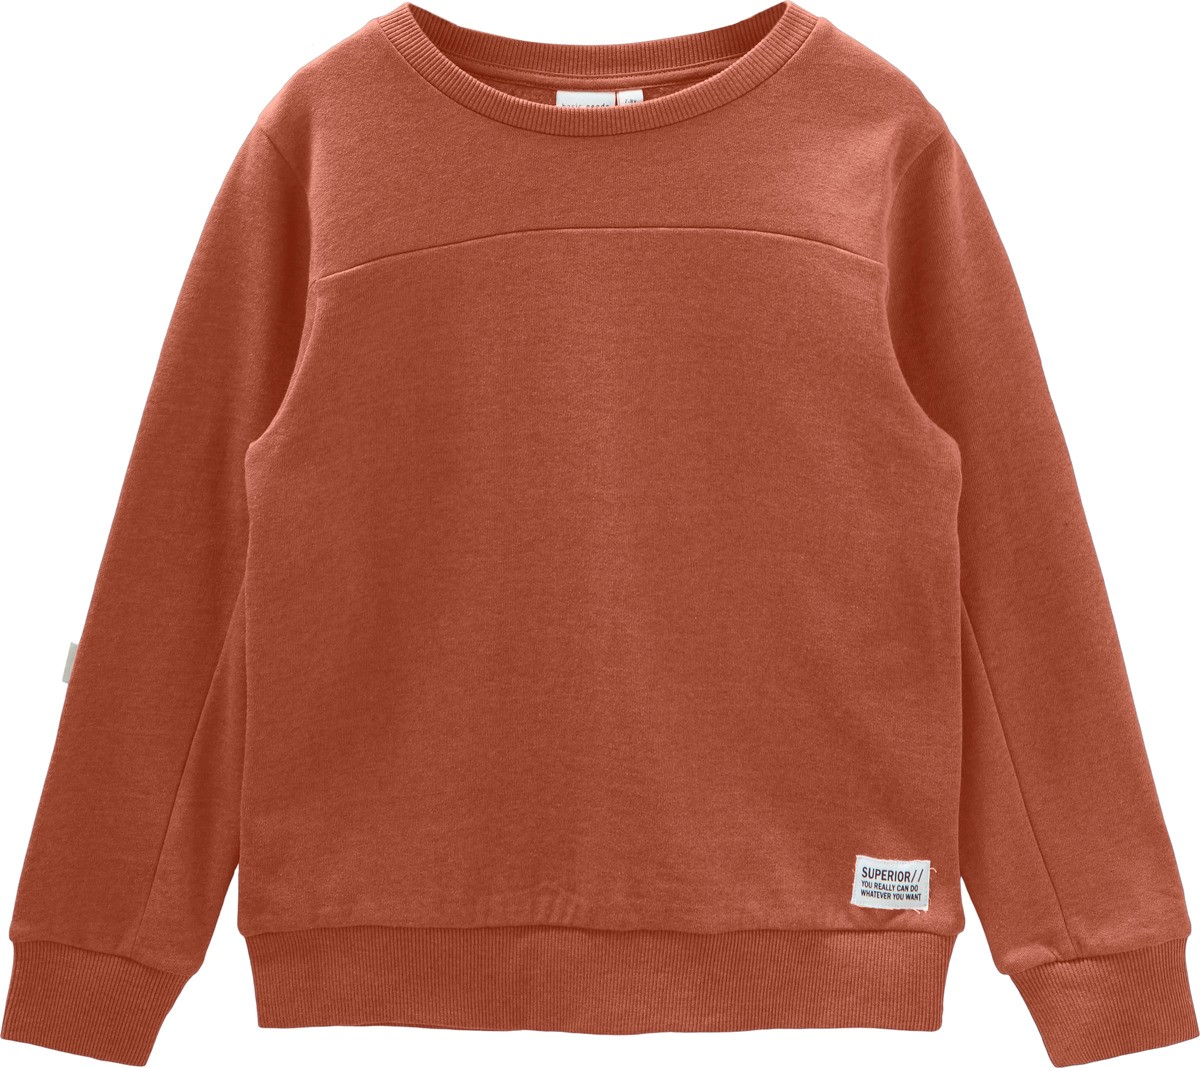 Name It mini- Van sweater